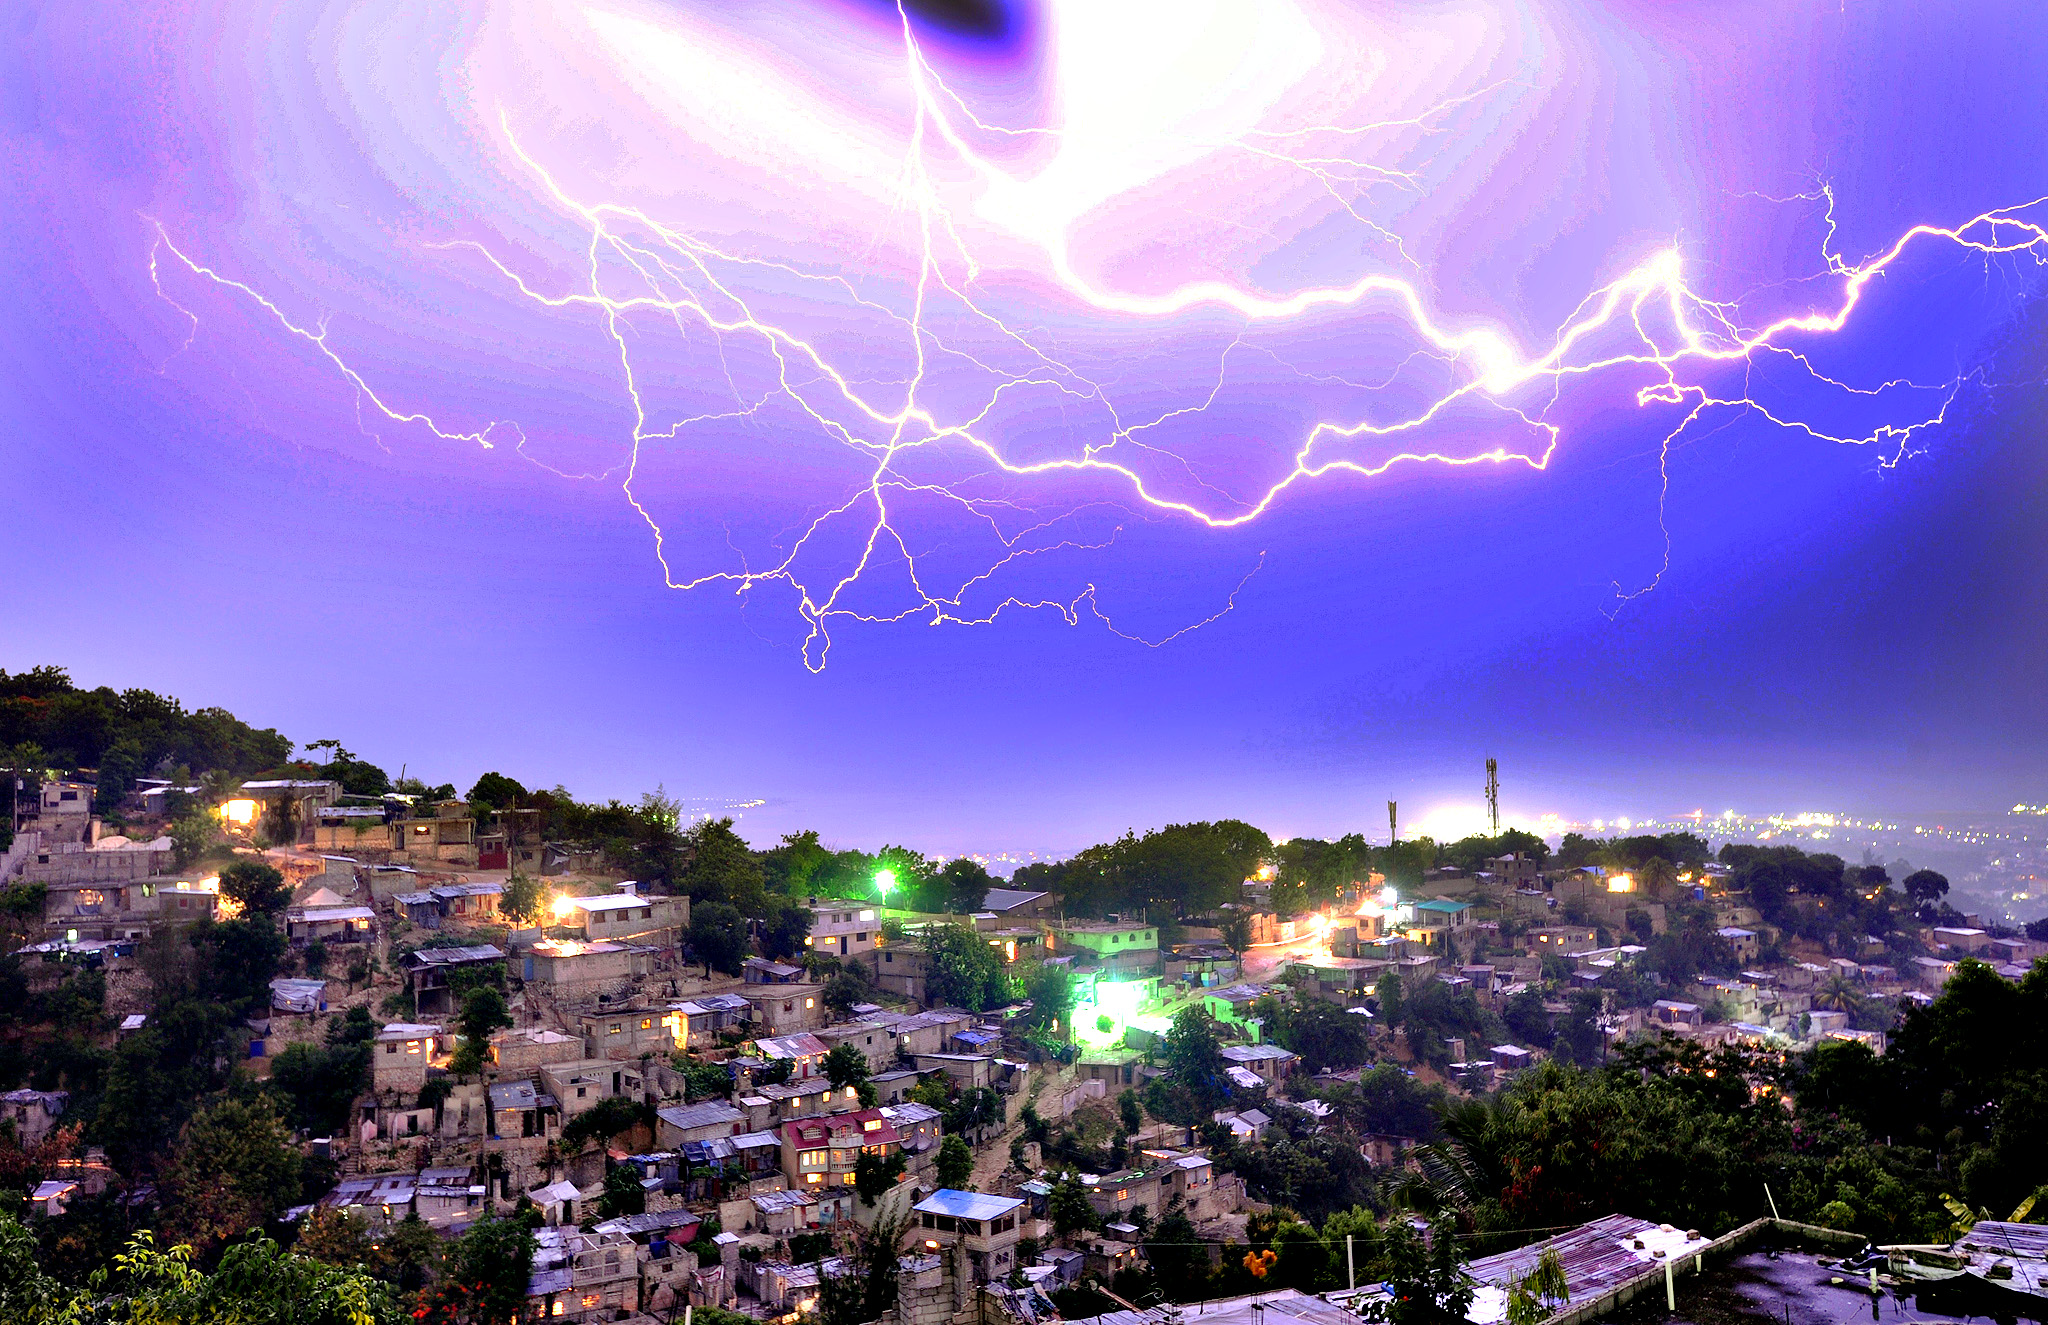 Lightning strikes during an evening thunderstorm on May 29, 2014 in the Haitian capital Port-au-Prince.